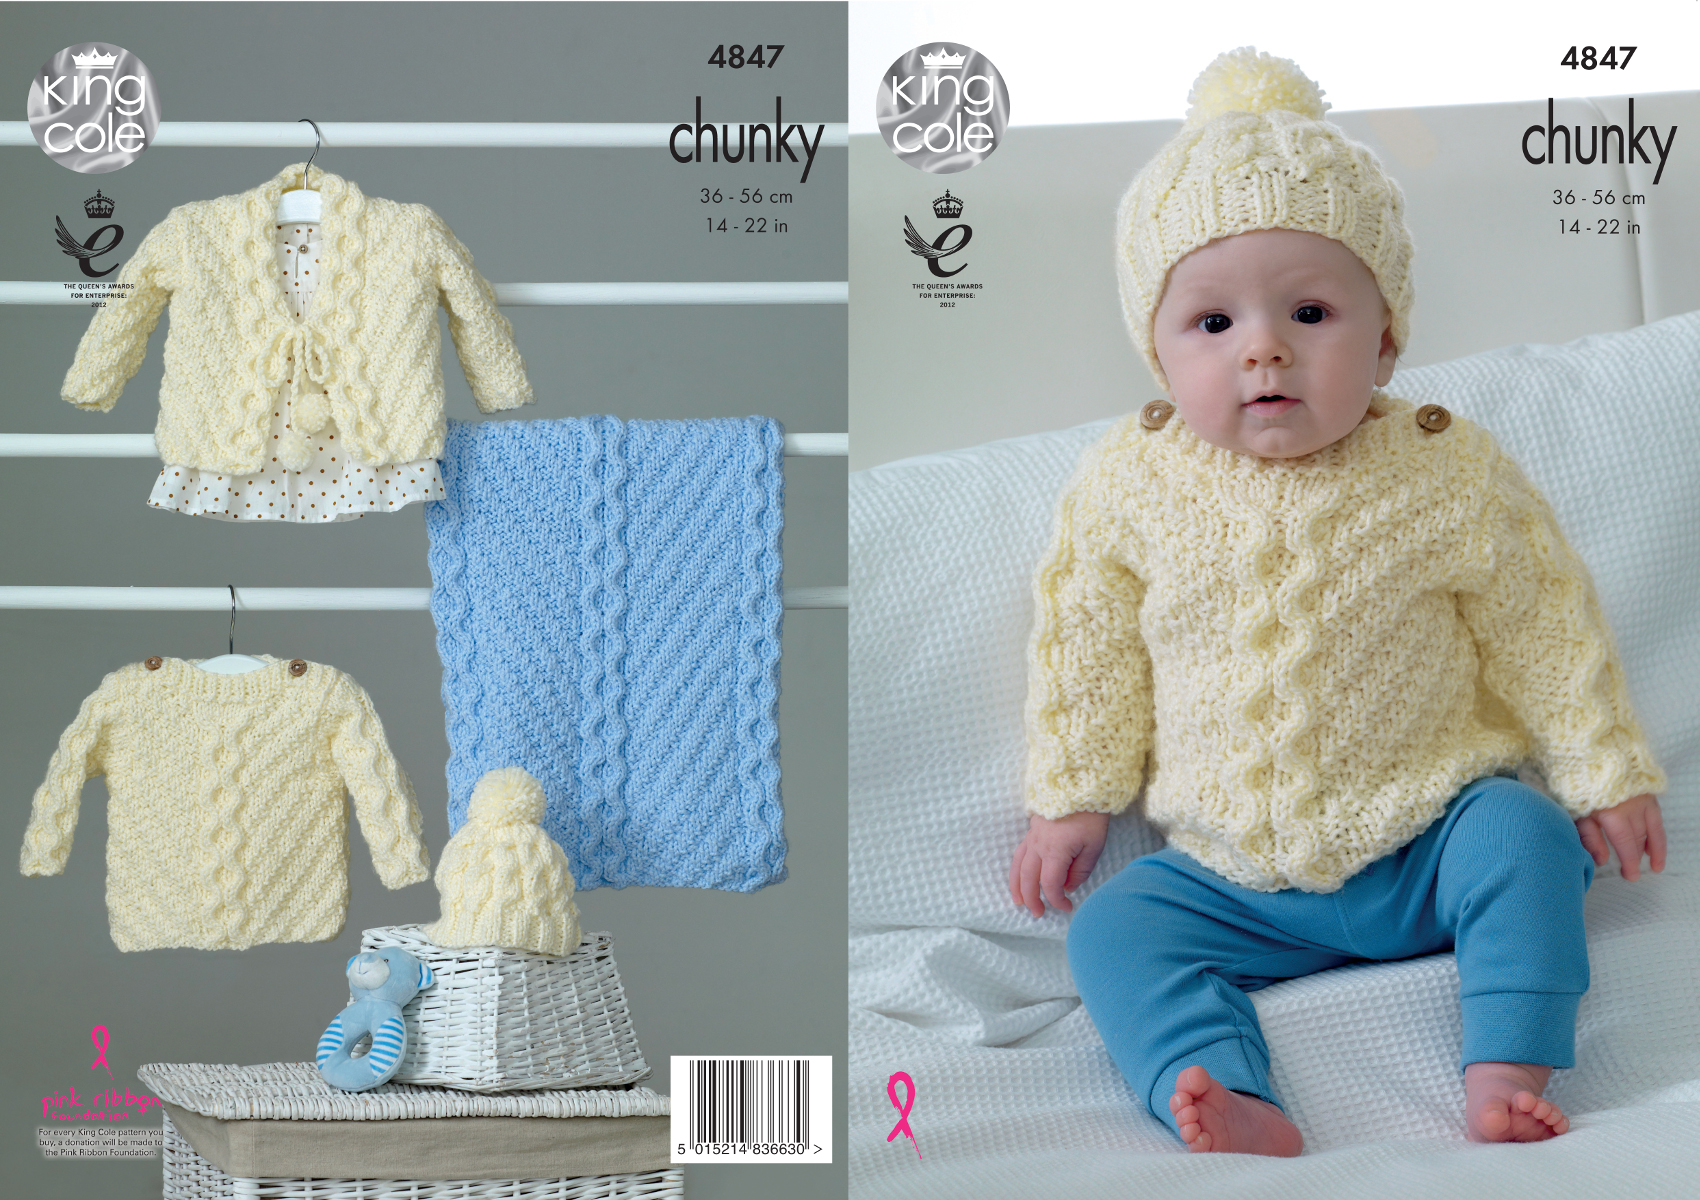 8f458b457 Chunky Knitting Pattern King Cole Baby Cable Sweater Cardigan Hat   Blanket  4847